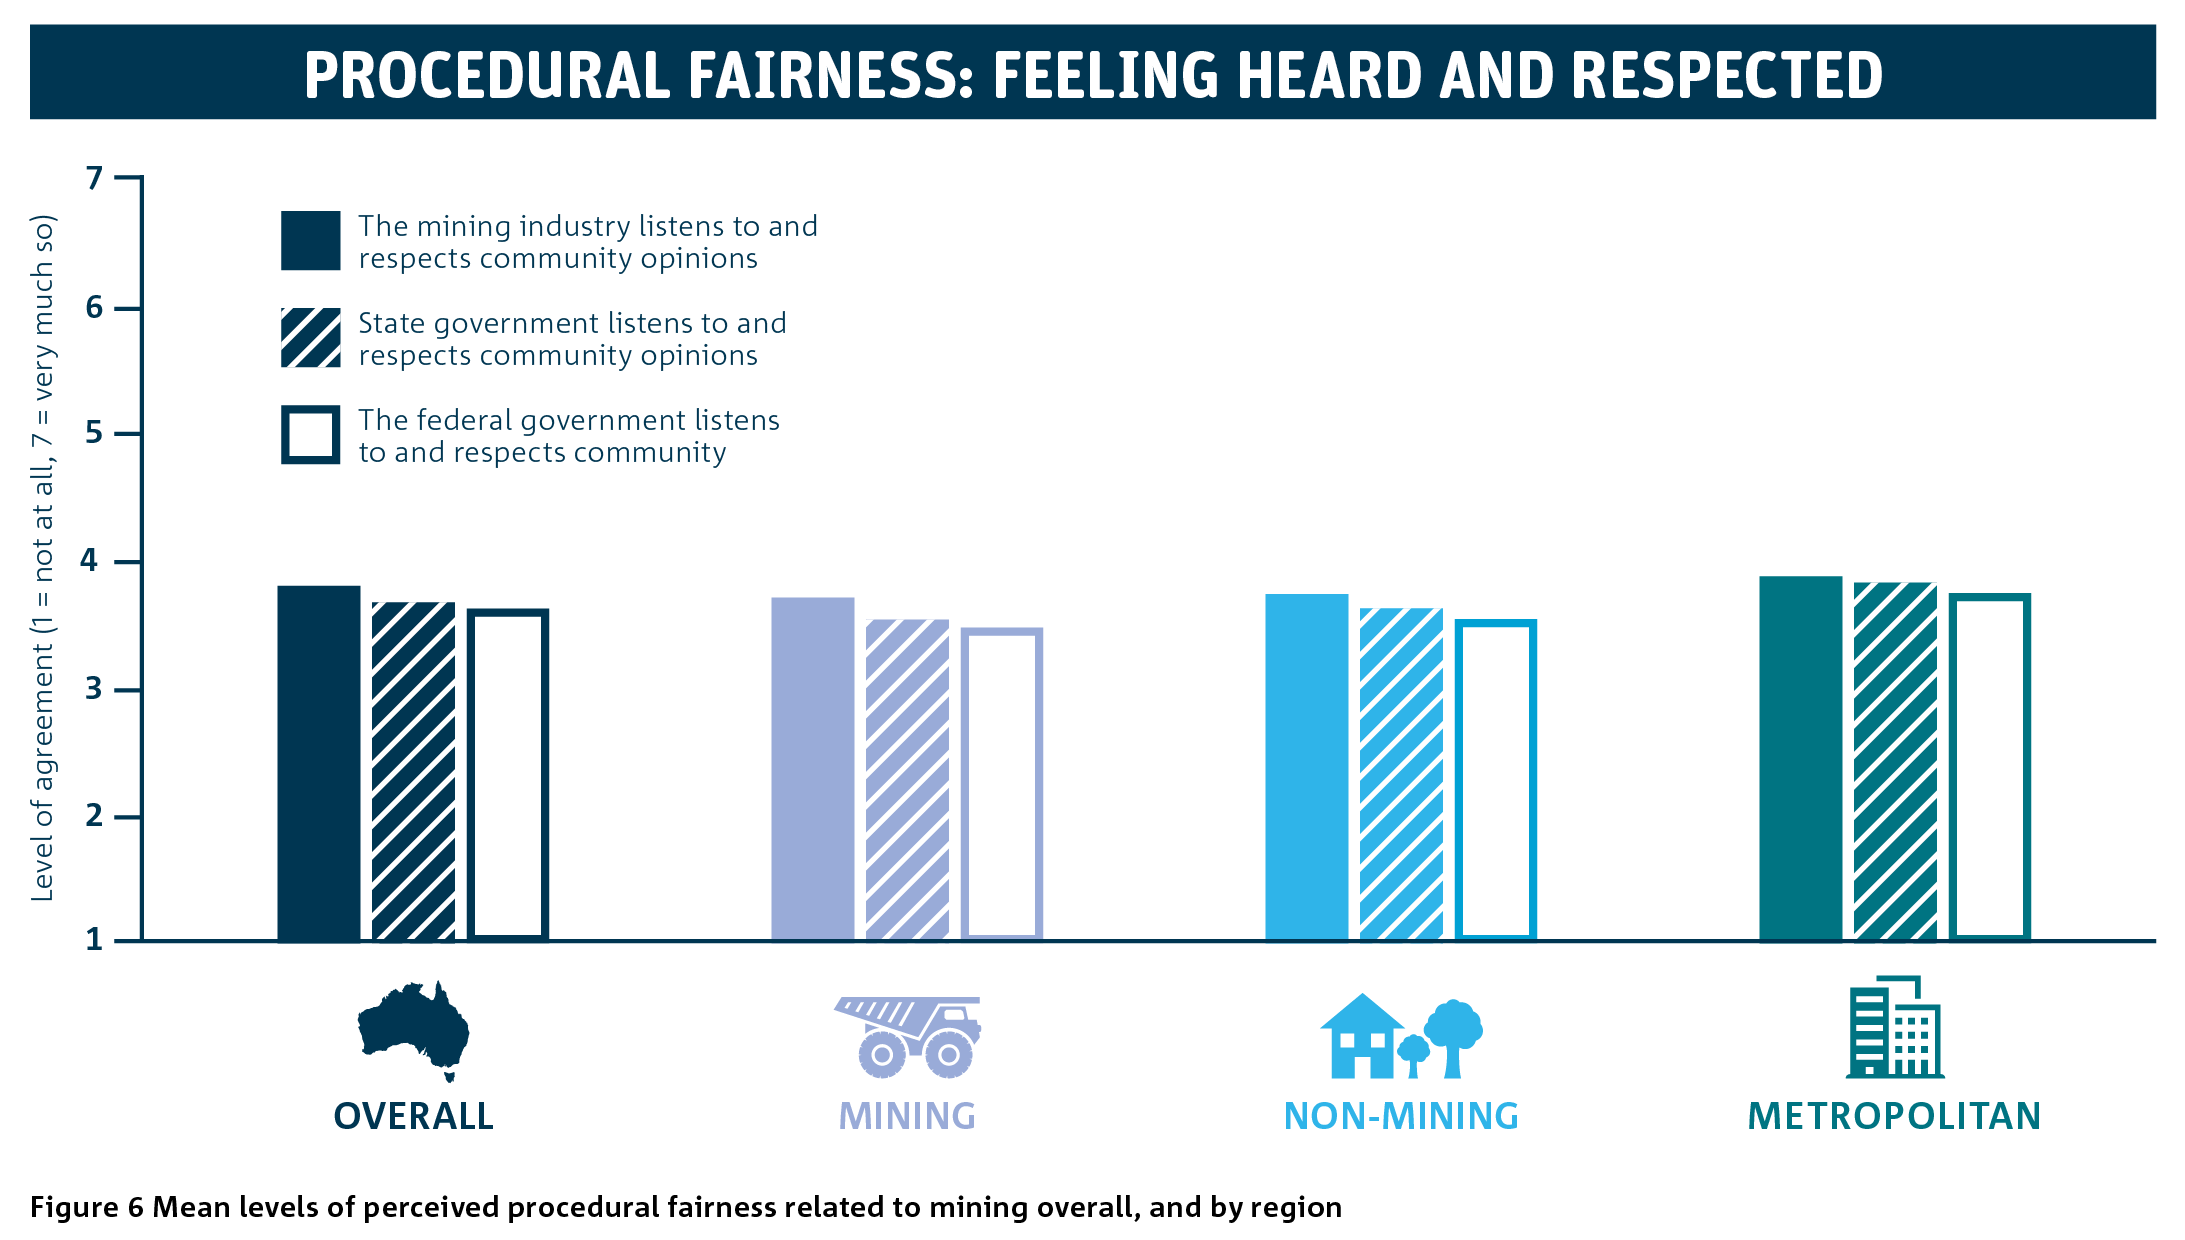 Bar graph showing the mean levels of percieved procedural fairness related to mining overall and by region.